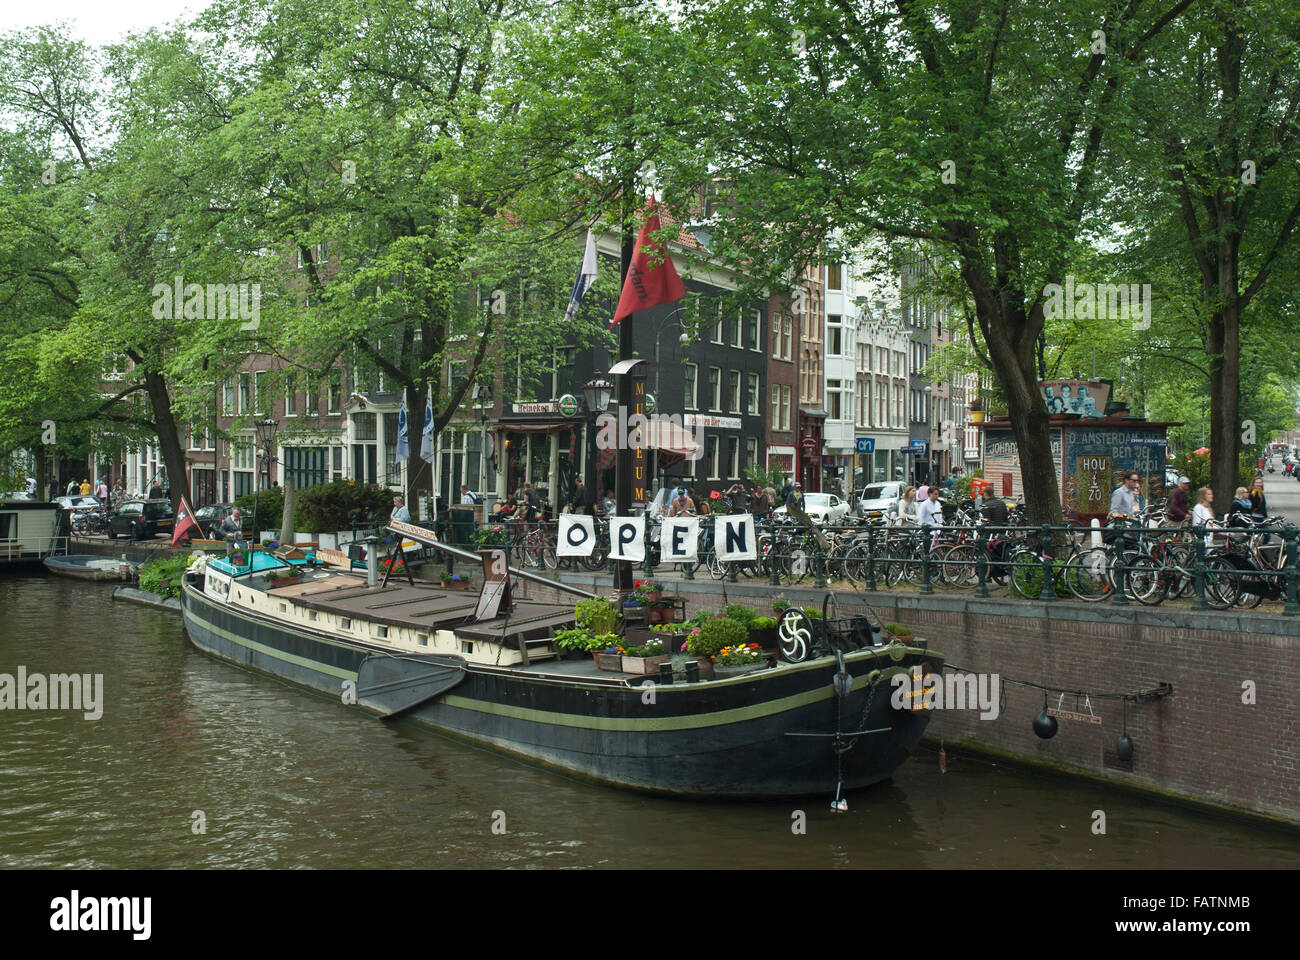 Old Amsterdam, Holland. House Boat / Barge Musem on a canal and street scene with bicycles and trees. - Stock Image